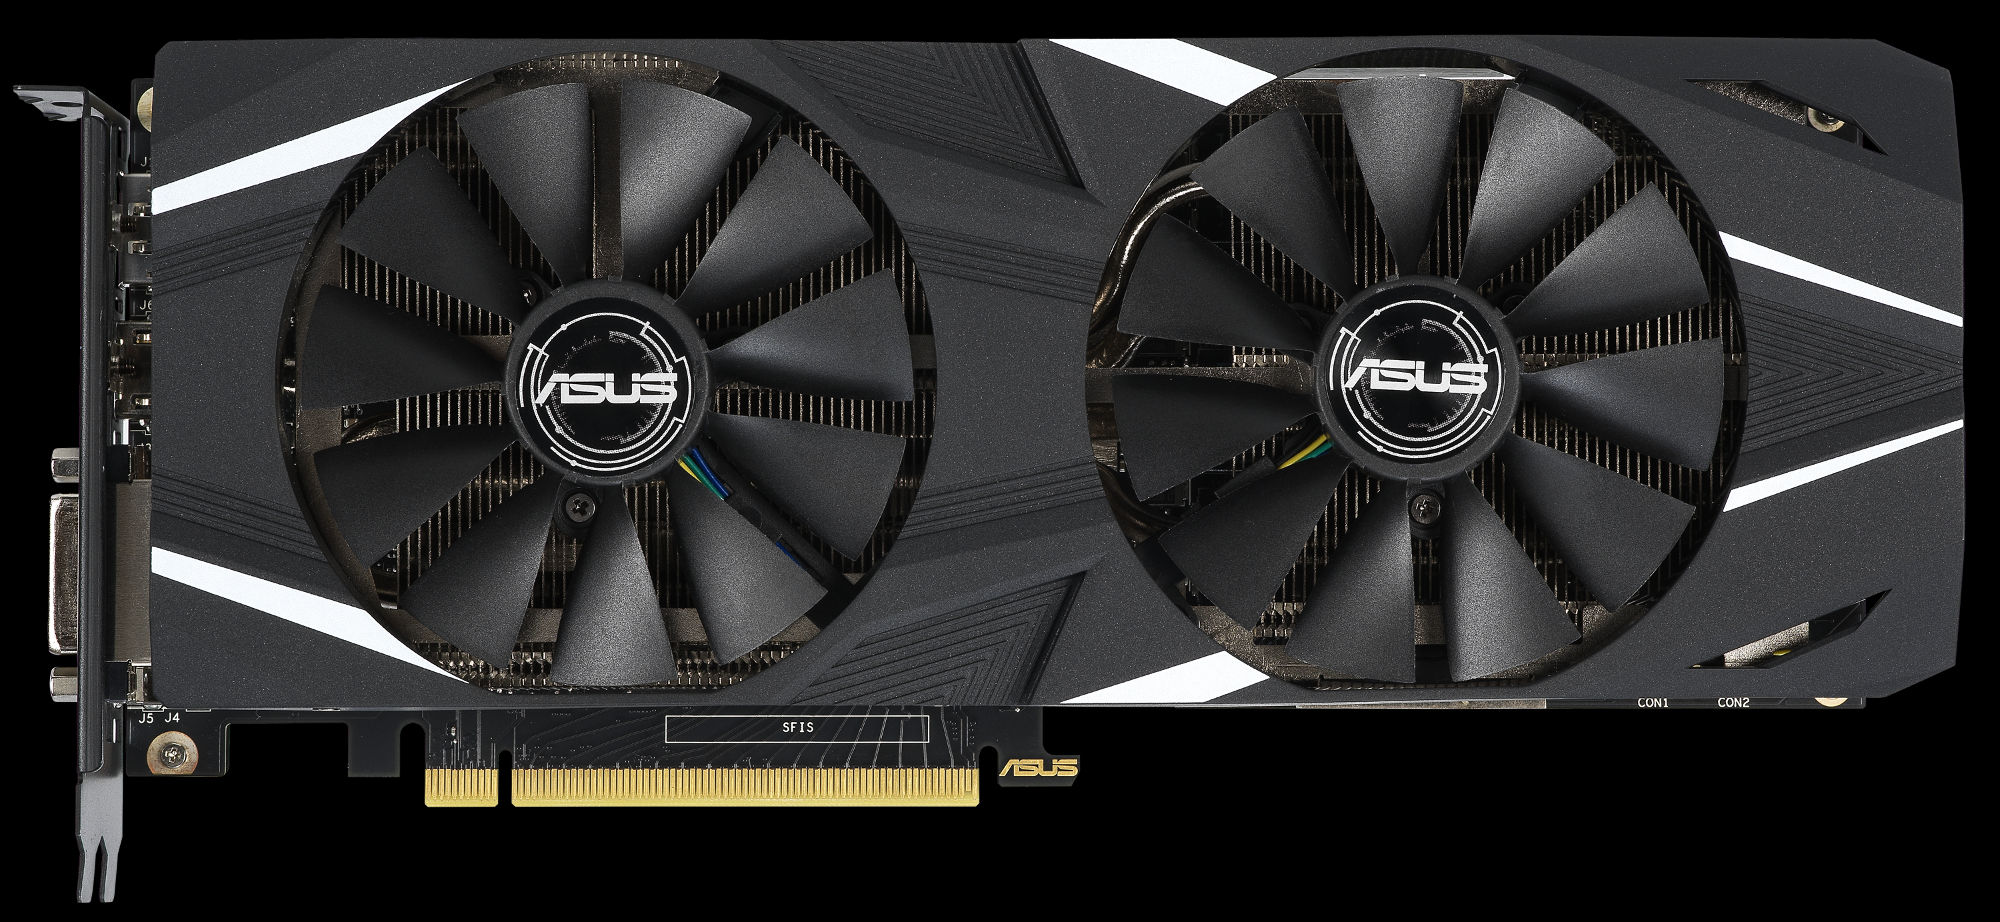 ASUS and ROG GeForce RTX 2060 graphics cards trace rays on a